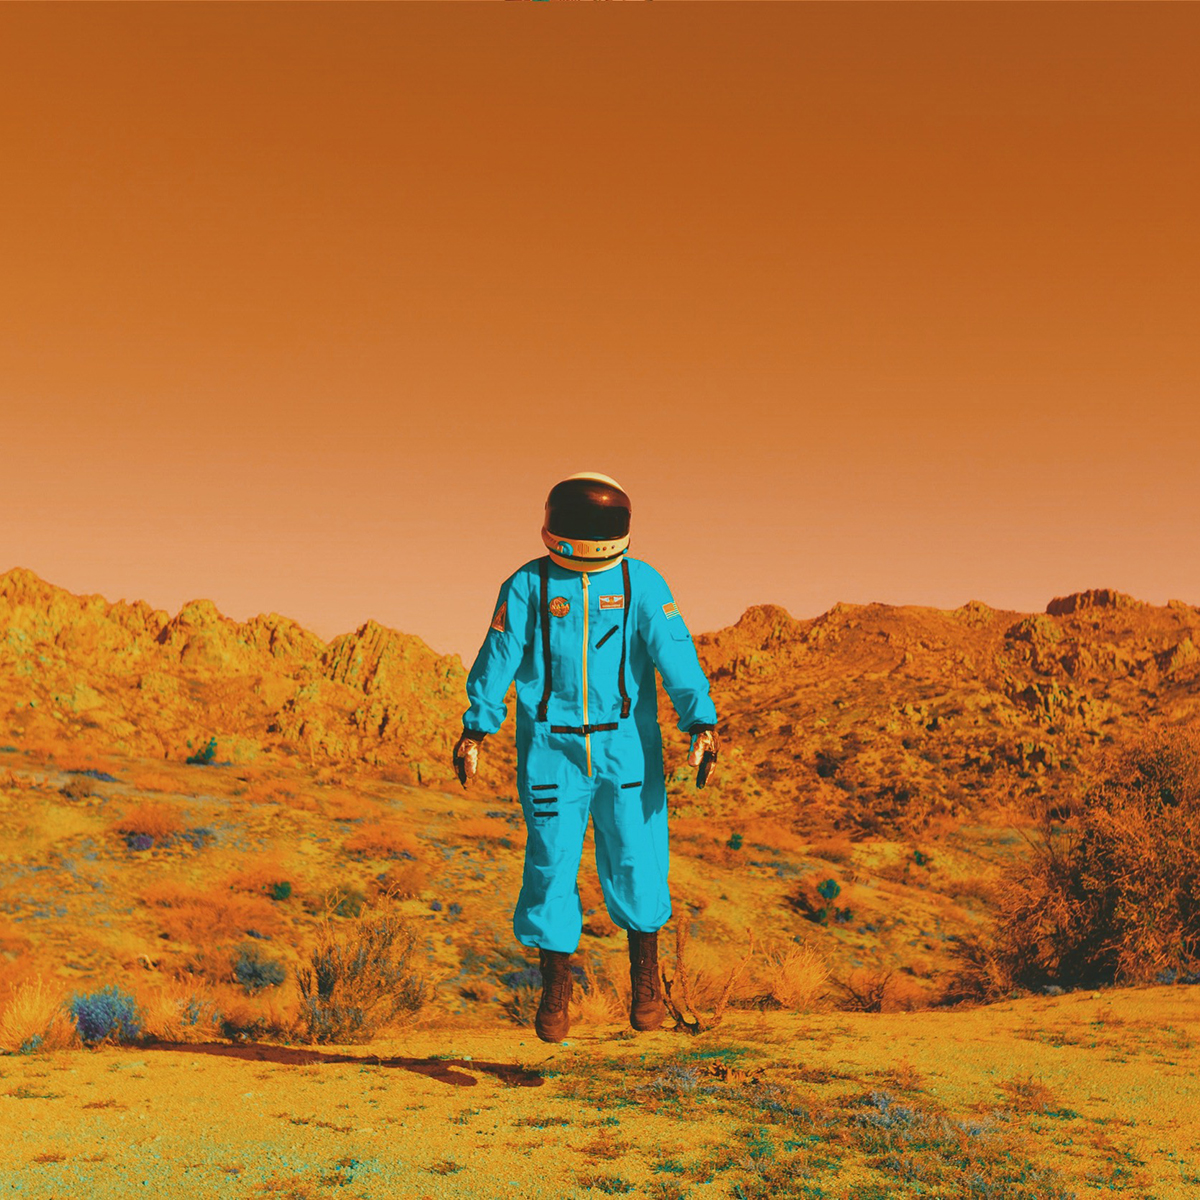 2100 : Life On Mars - A mock photo essay on the first human to live on Mars.